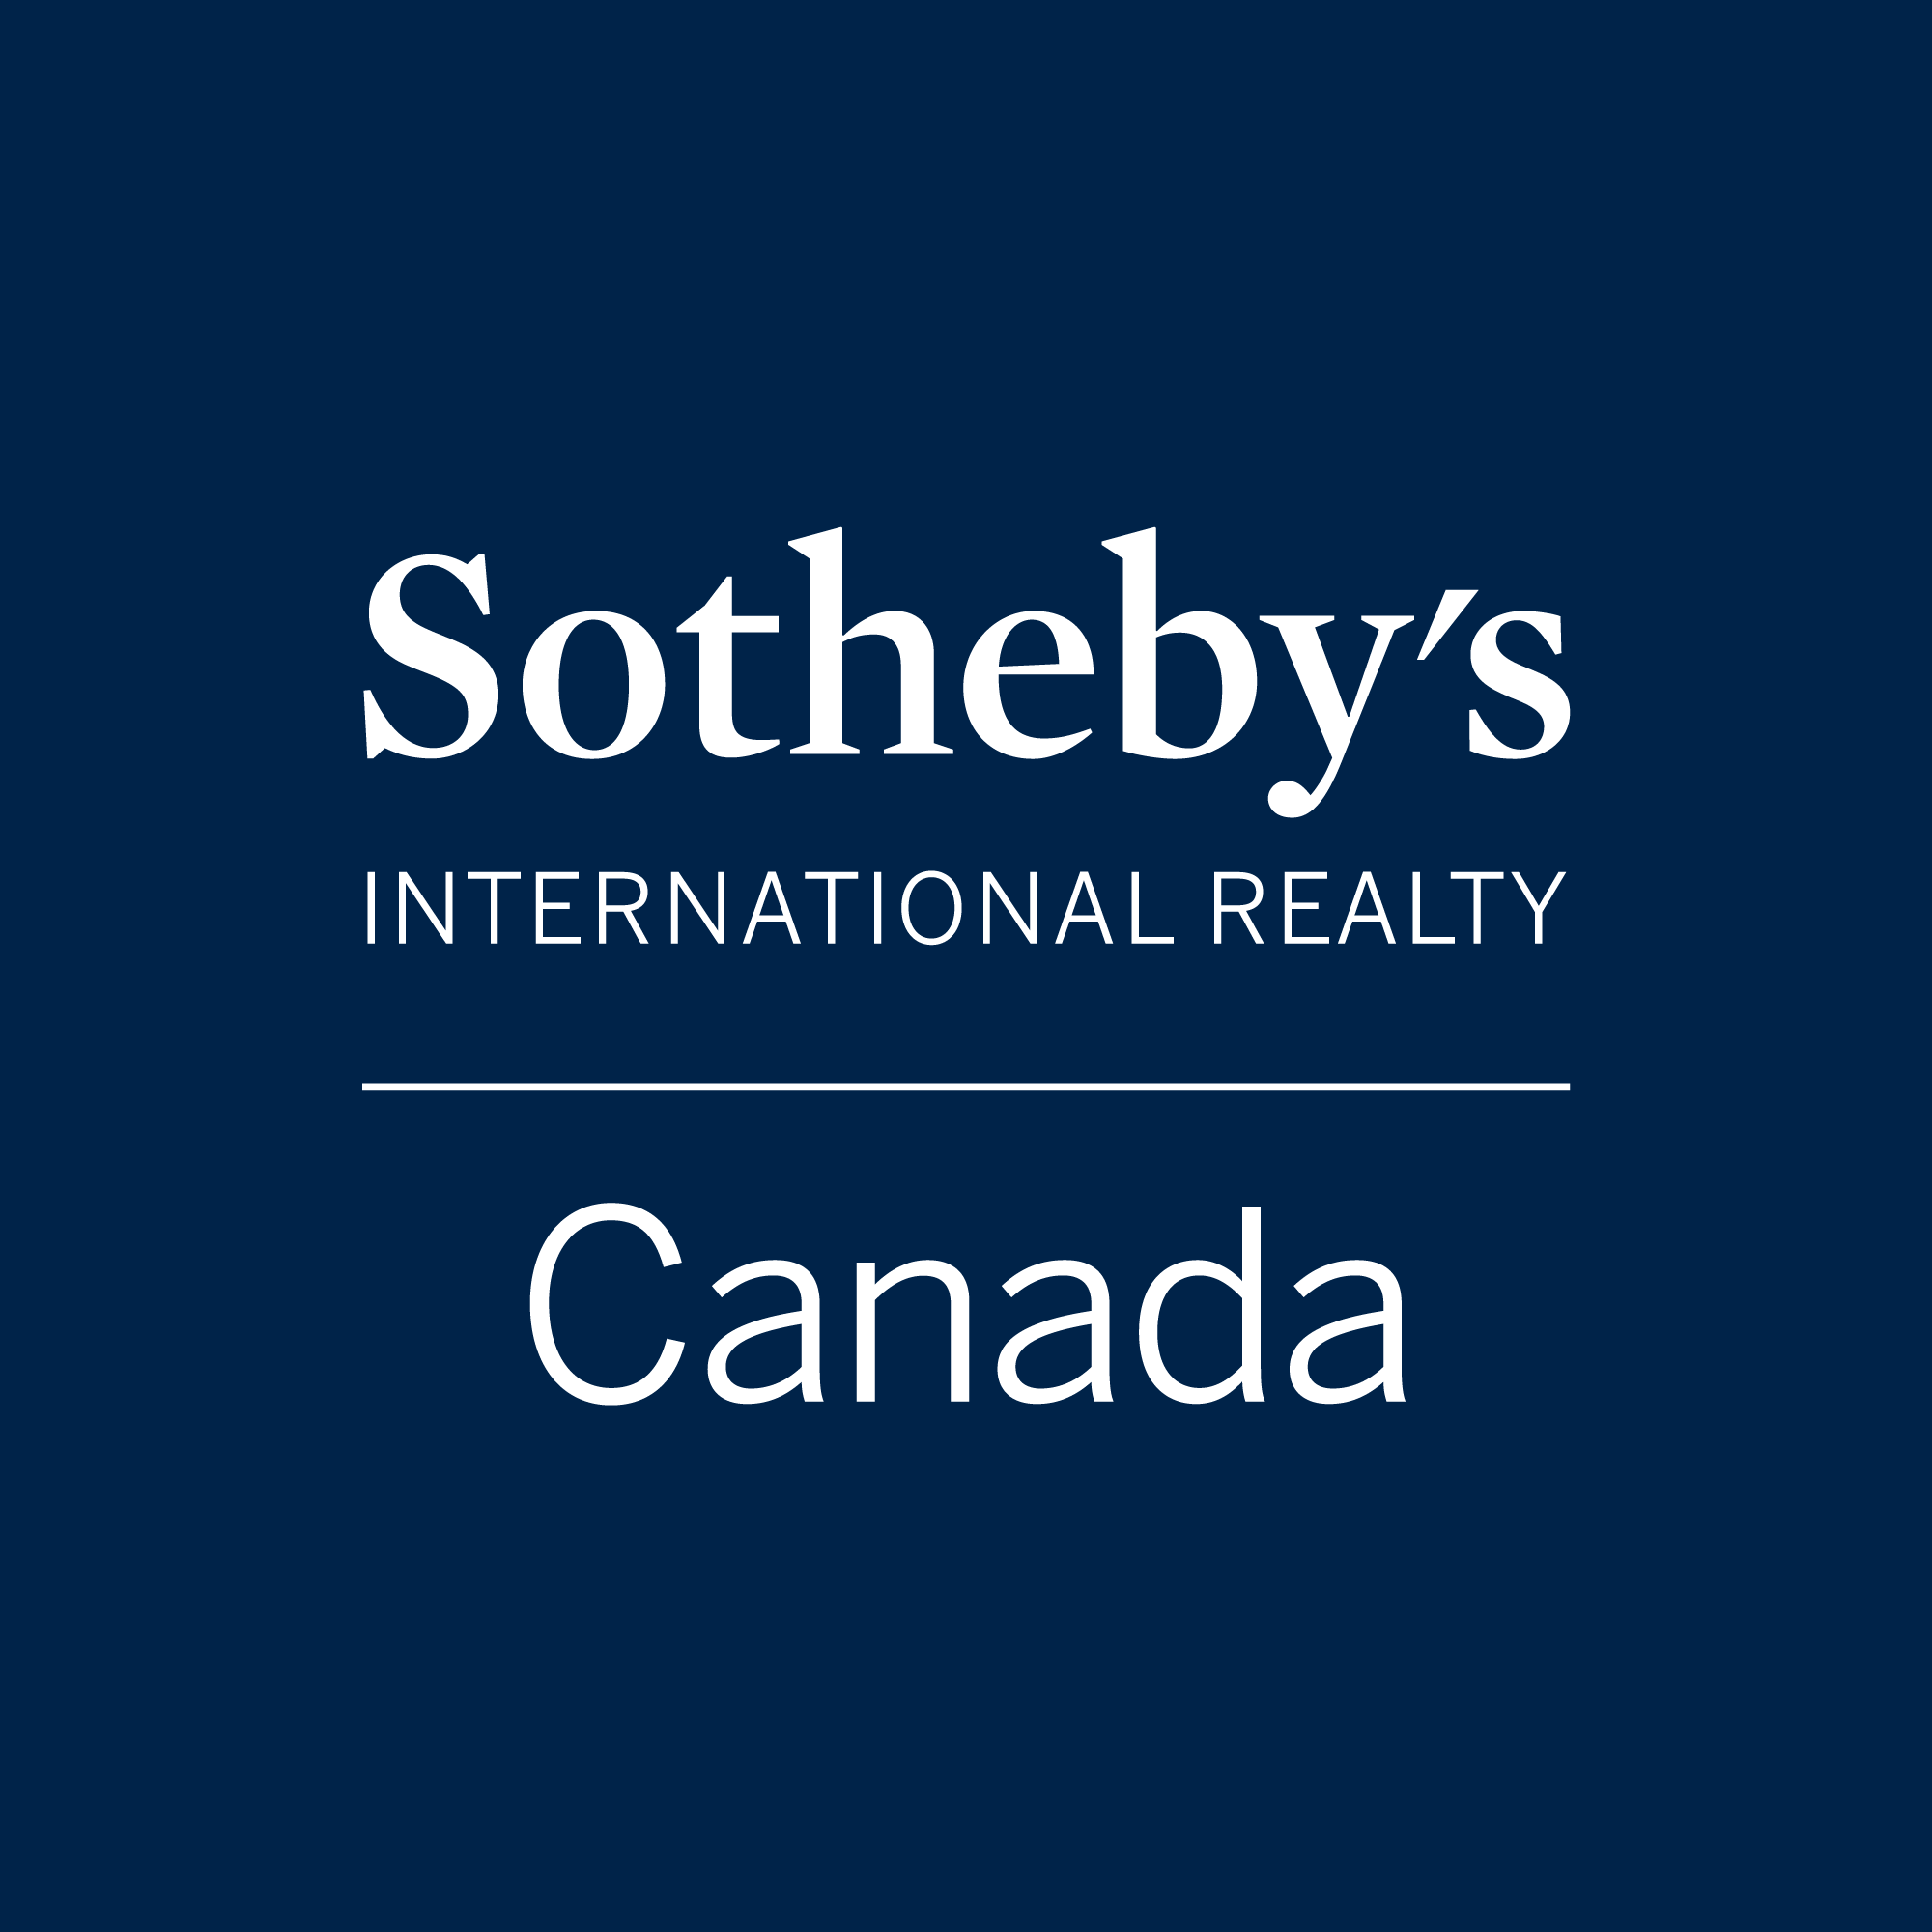 Sotheby's International Realty Canada Logo